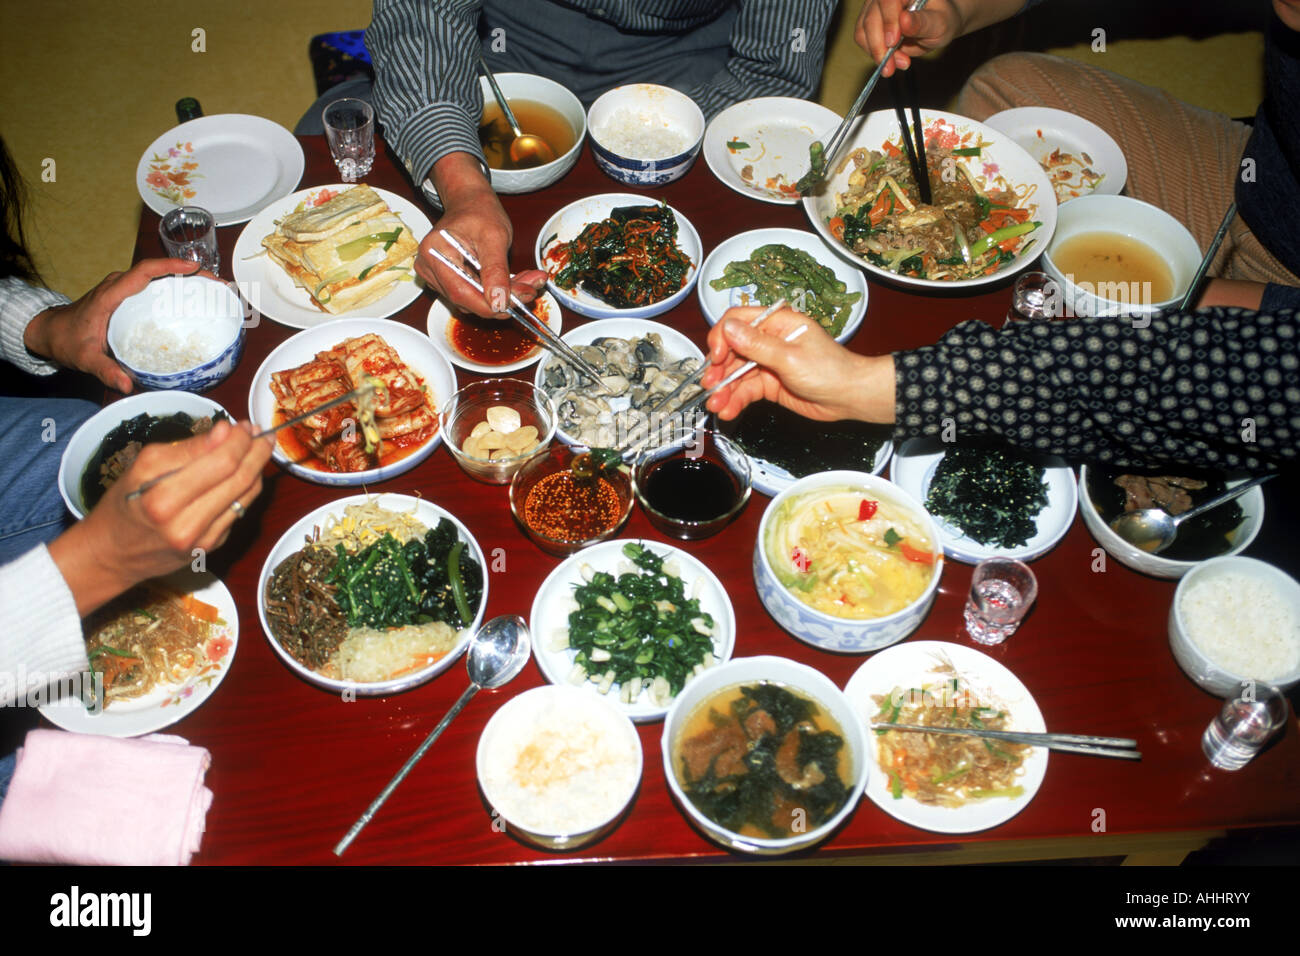 Family dinner table with food - Family Sitting At Dinner Table Eating Variety Home Made Korean Foods